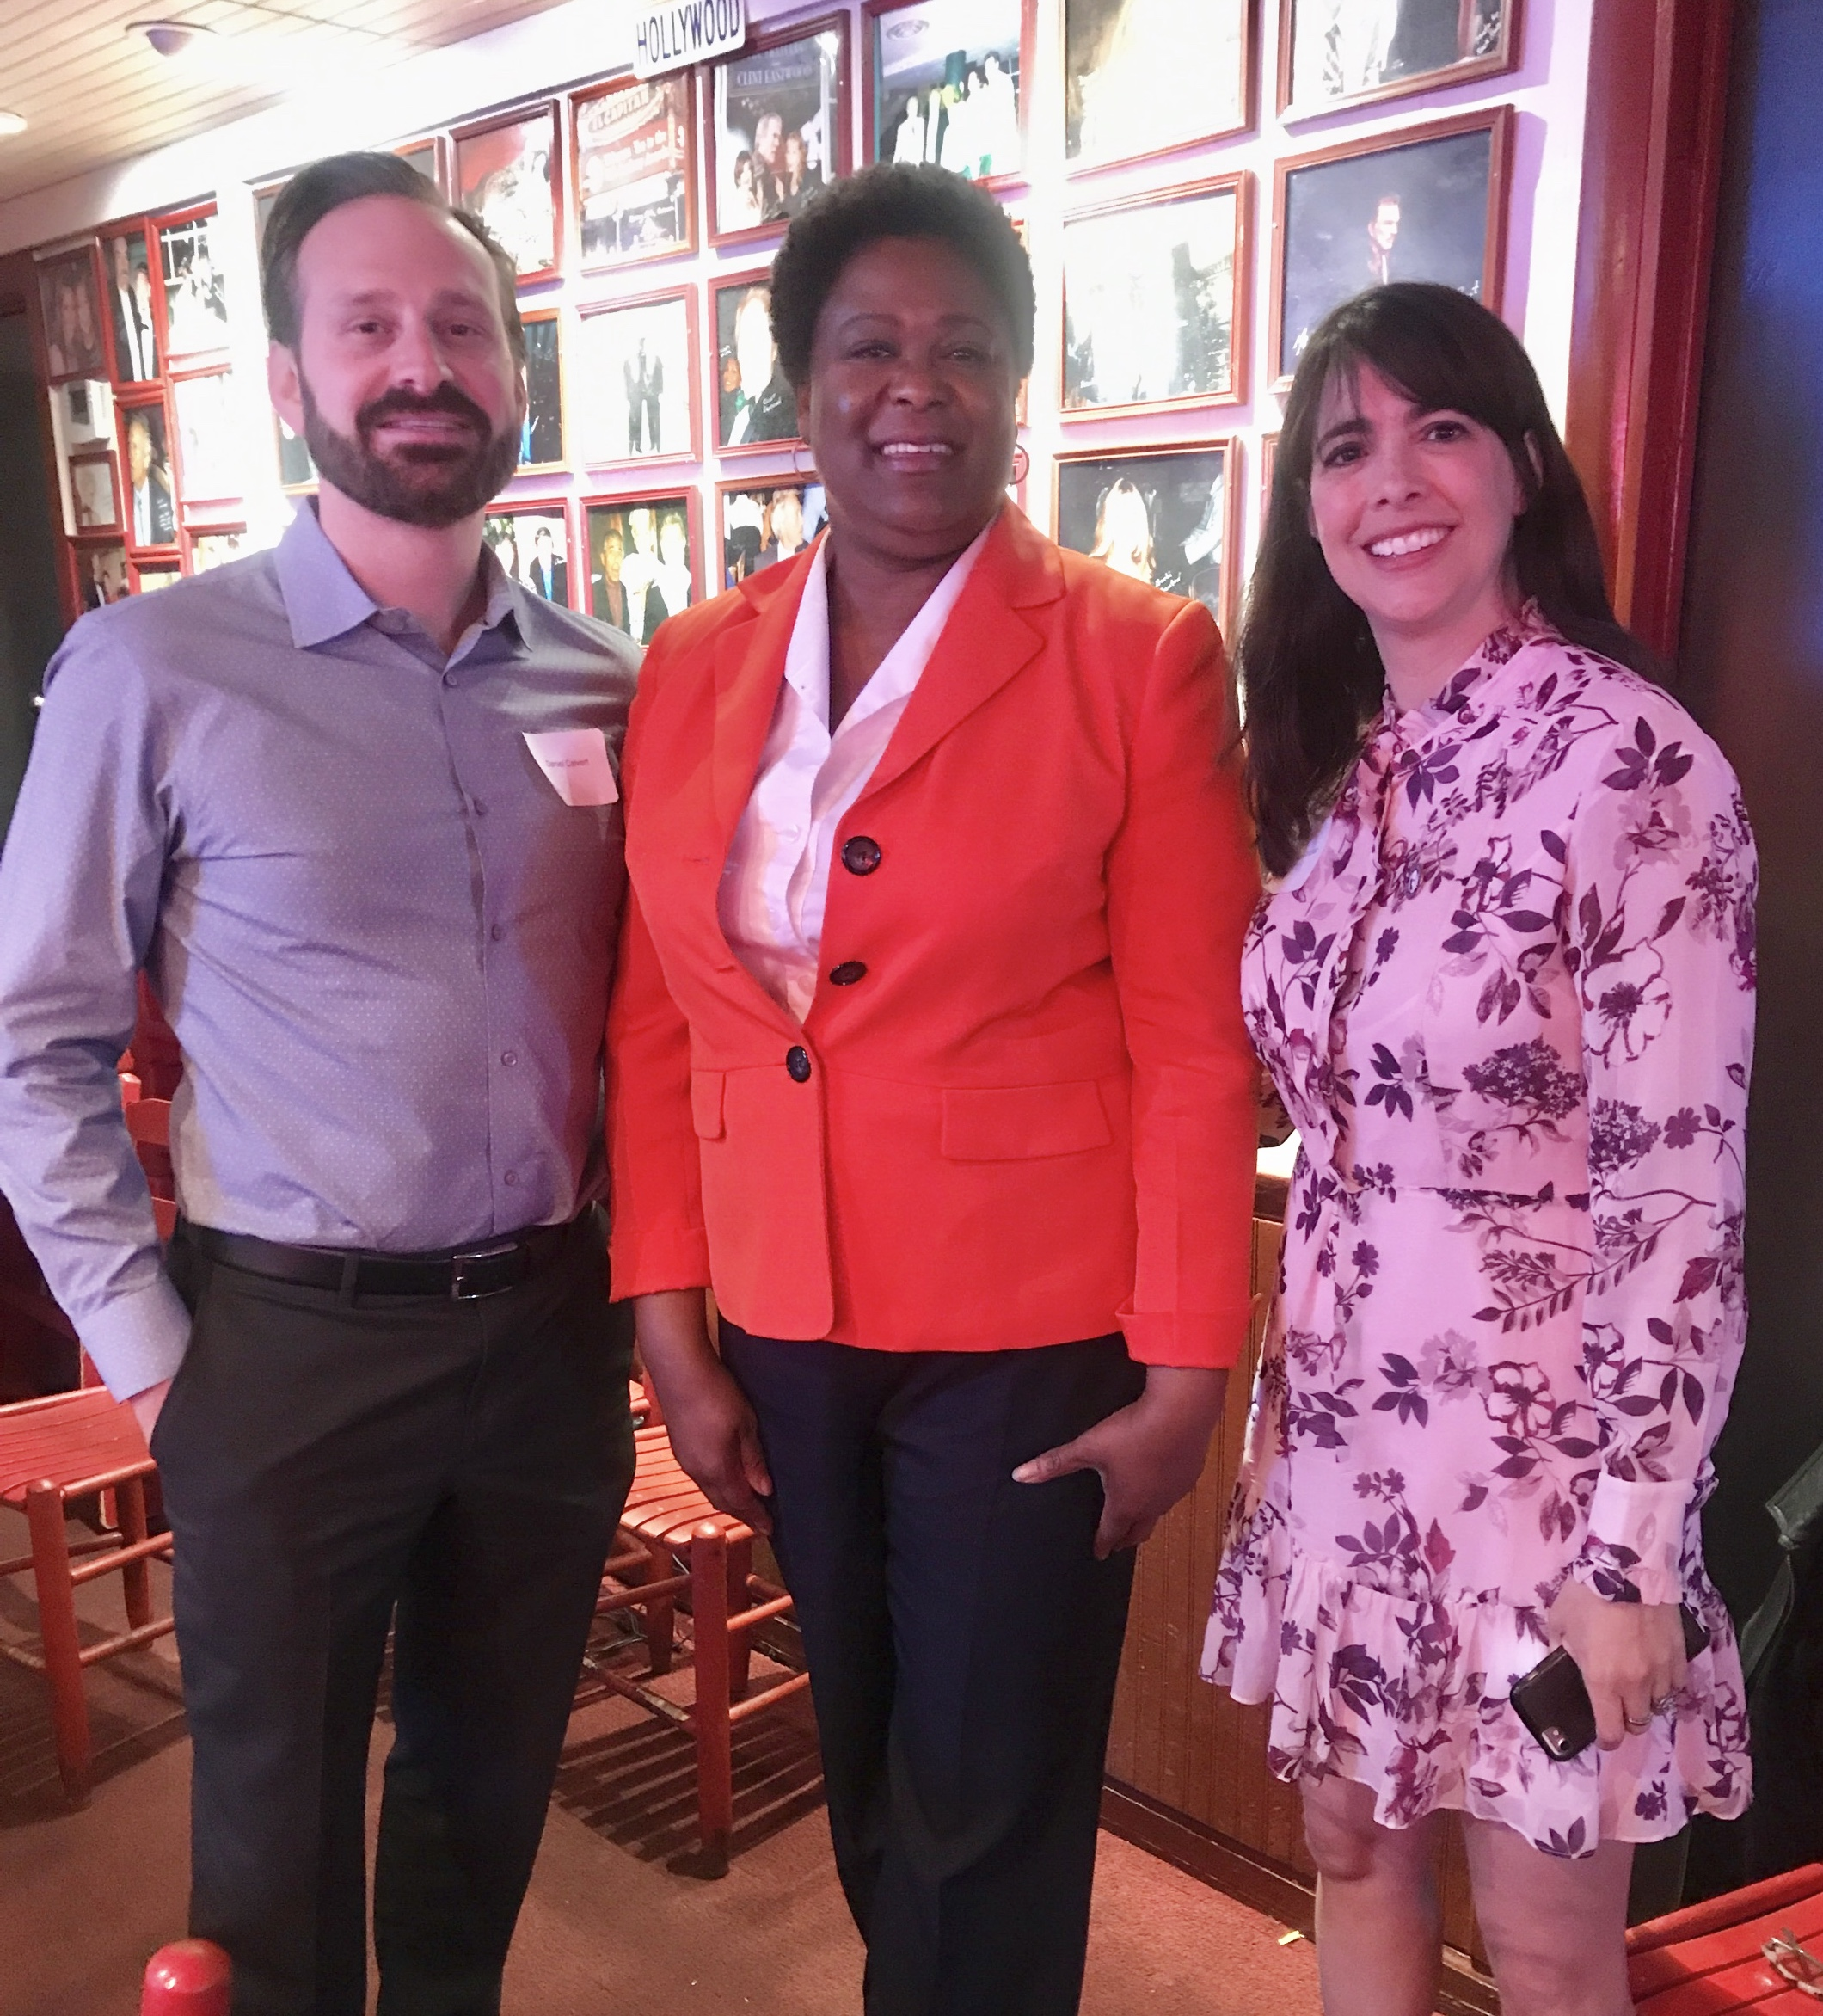 Atlanta City Council President Felicia A. Moore with City of Atlanta Urban Planner Daniel Calvert (left) and Isabel González Whitaker at a Friends of Sara J. González Park gathering at Nuevo Laredo in March.